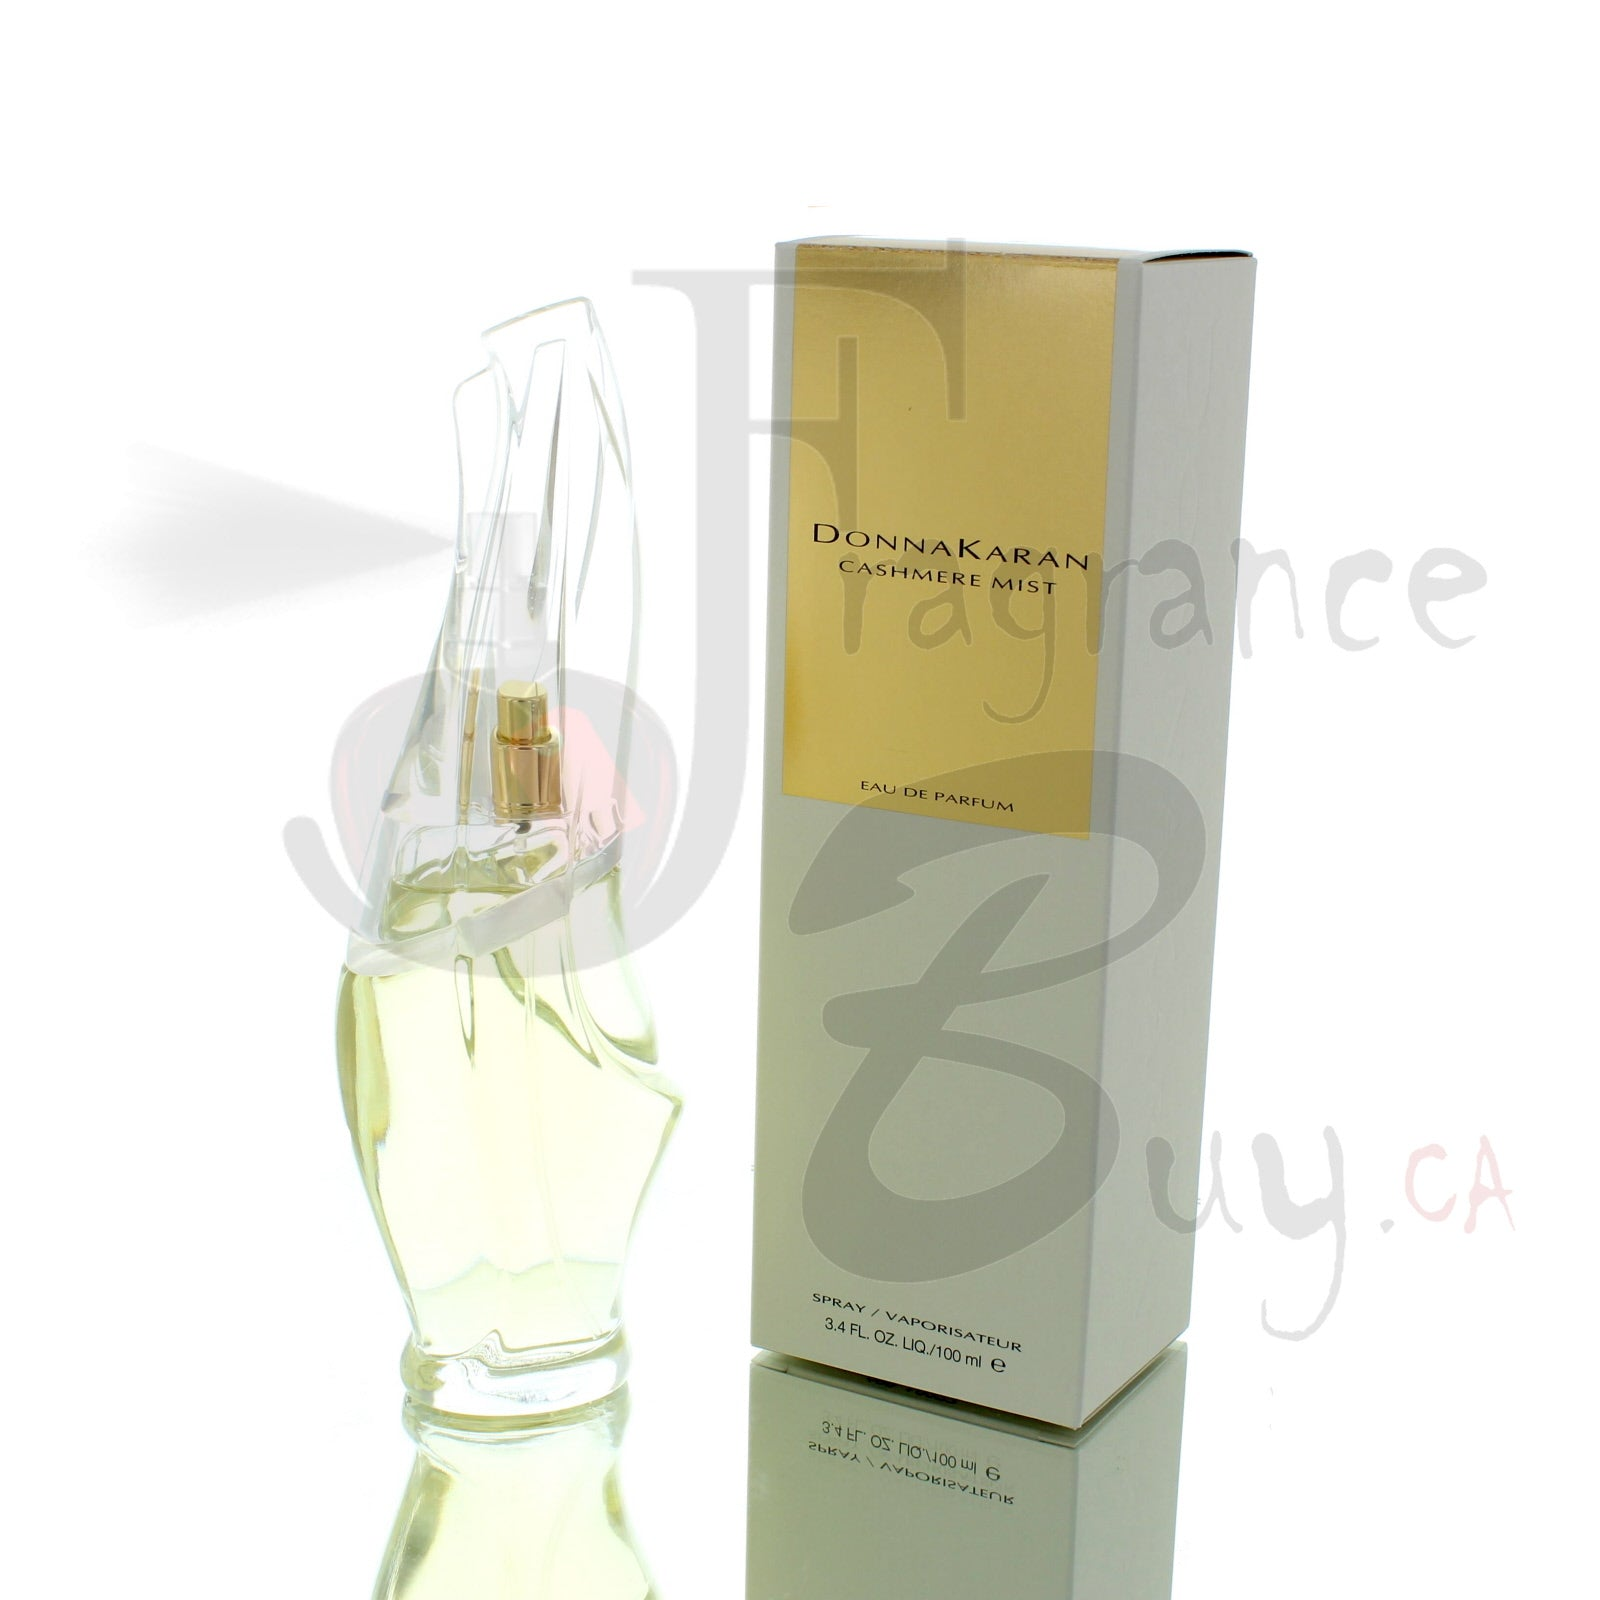 DKNY Donna Karan Cashmere Mist For Woman